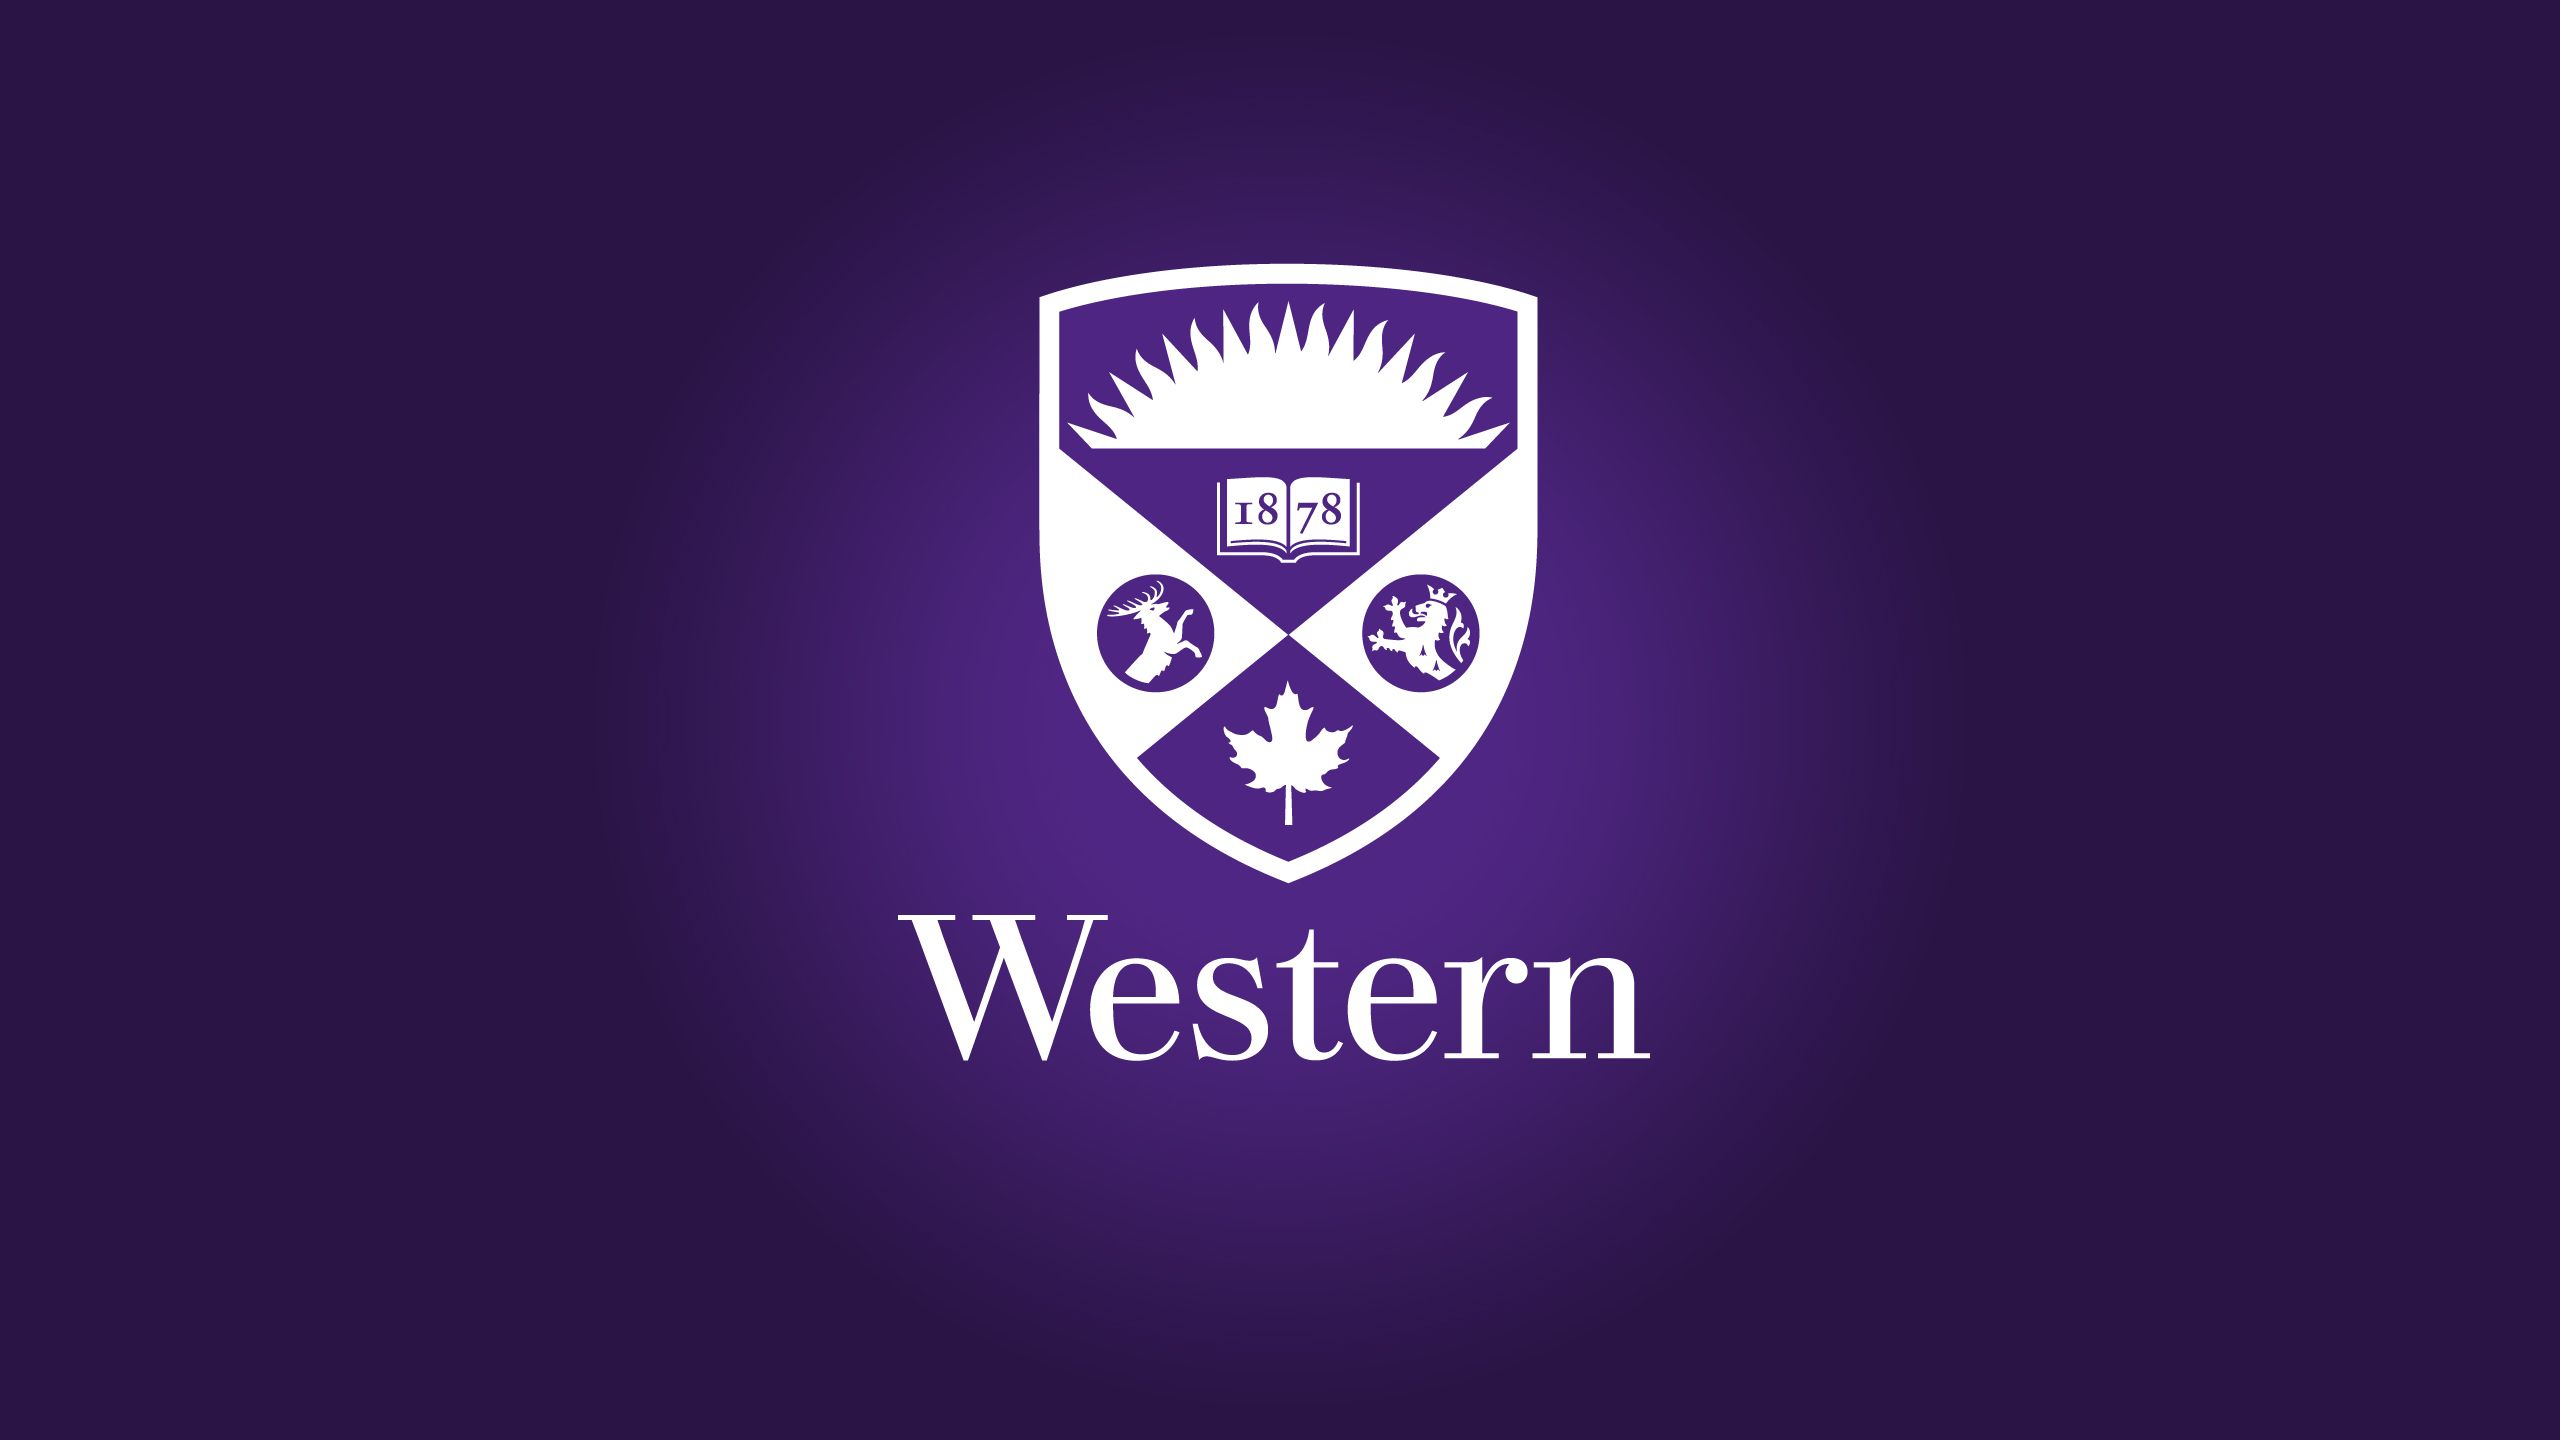 2560x1440 Wallpapers - Communications - Western University